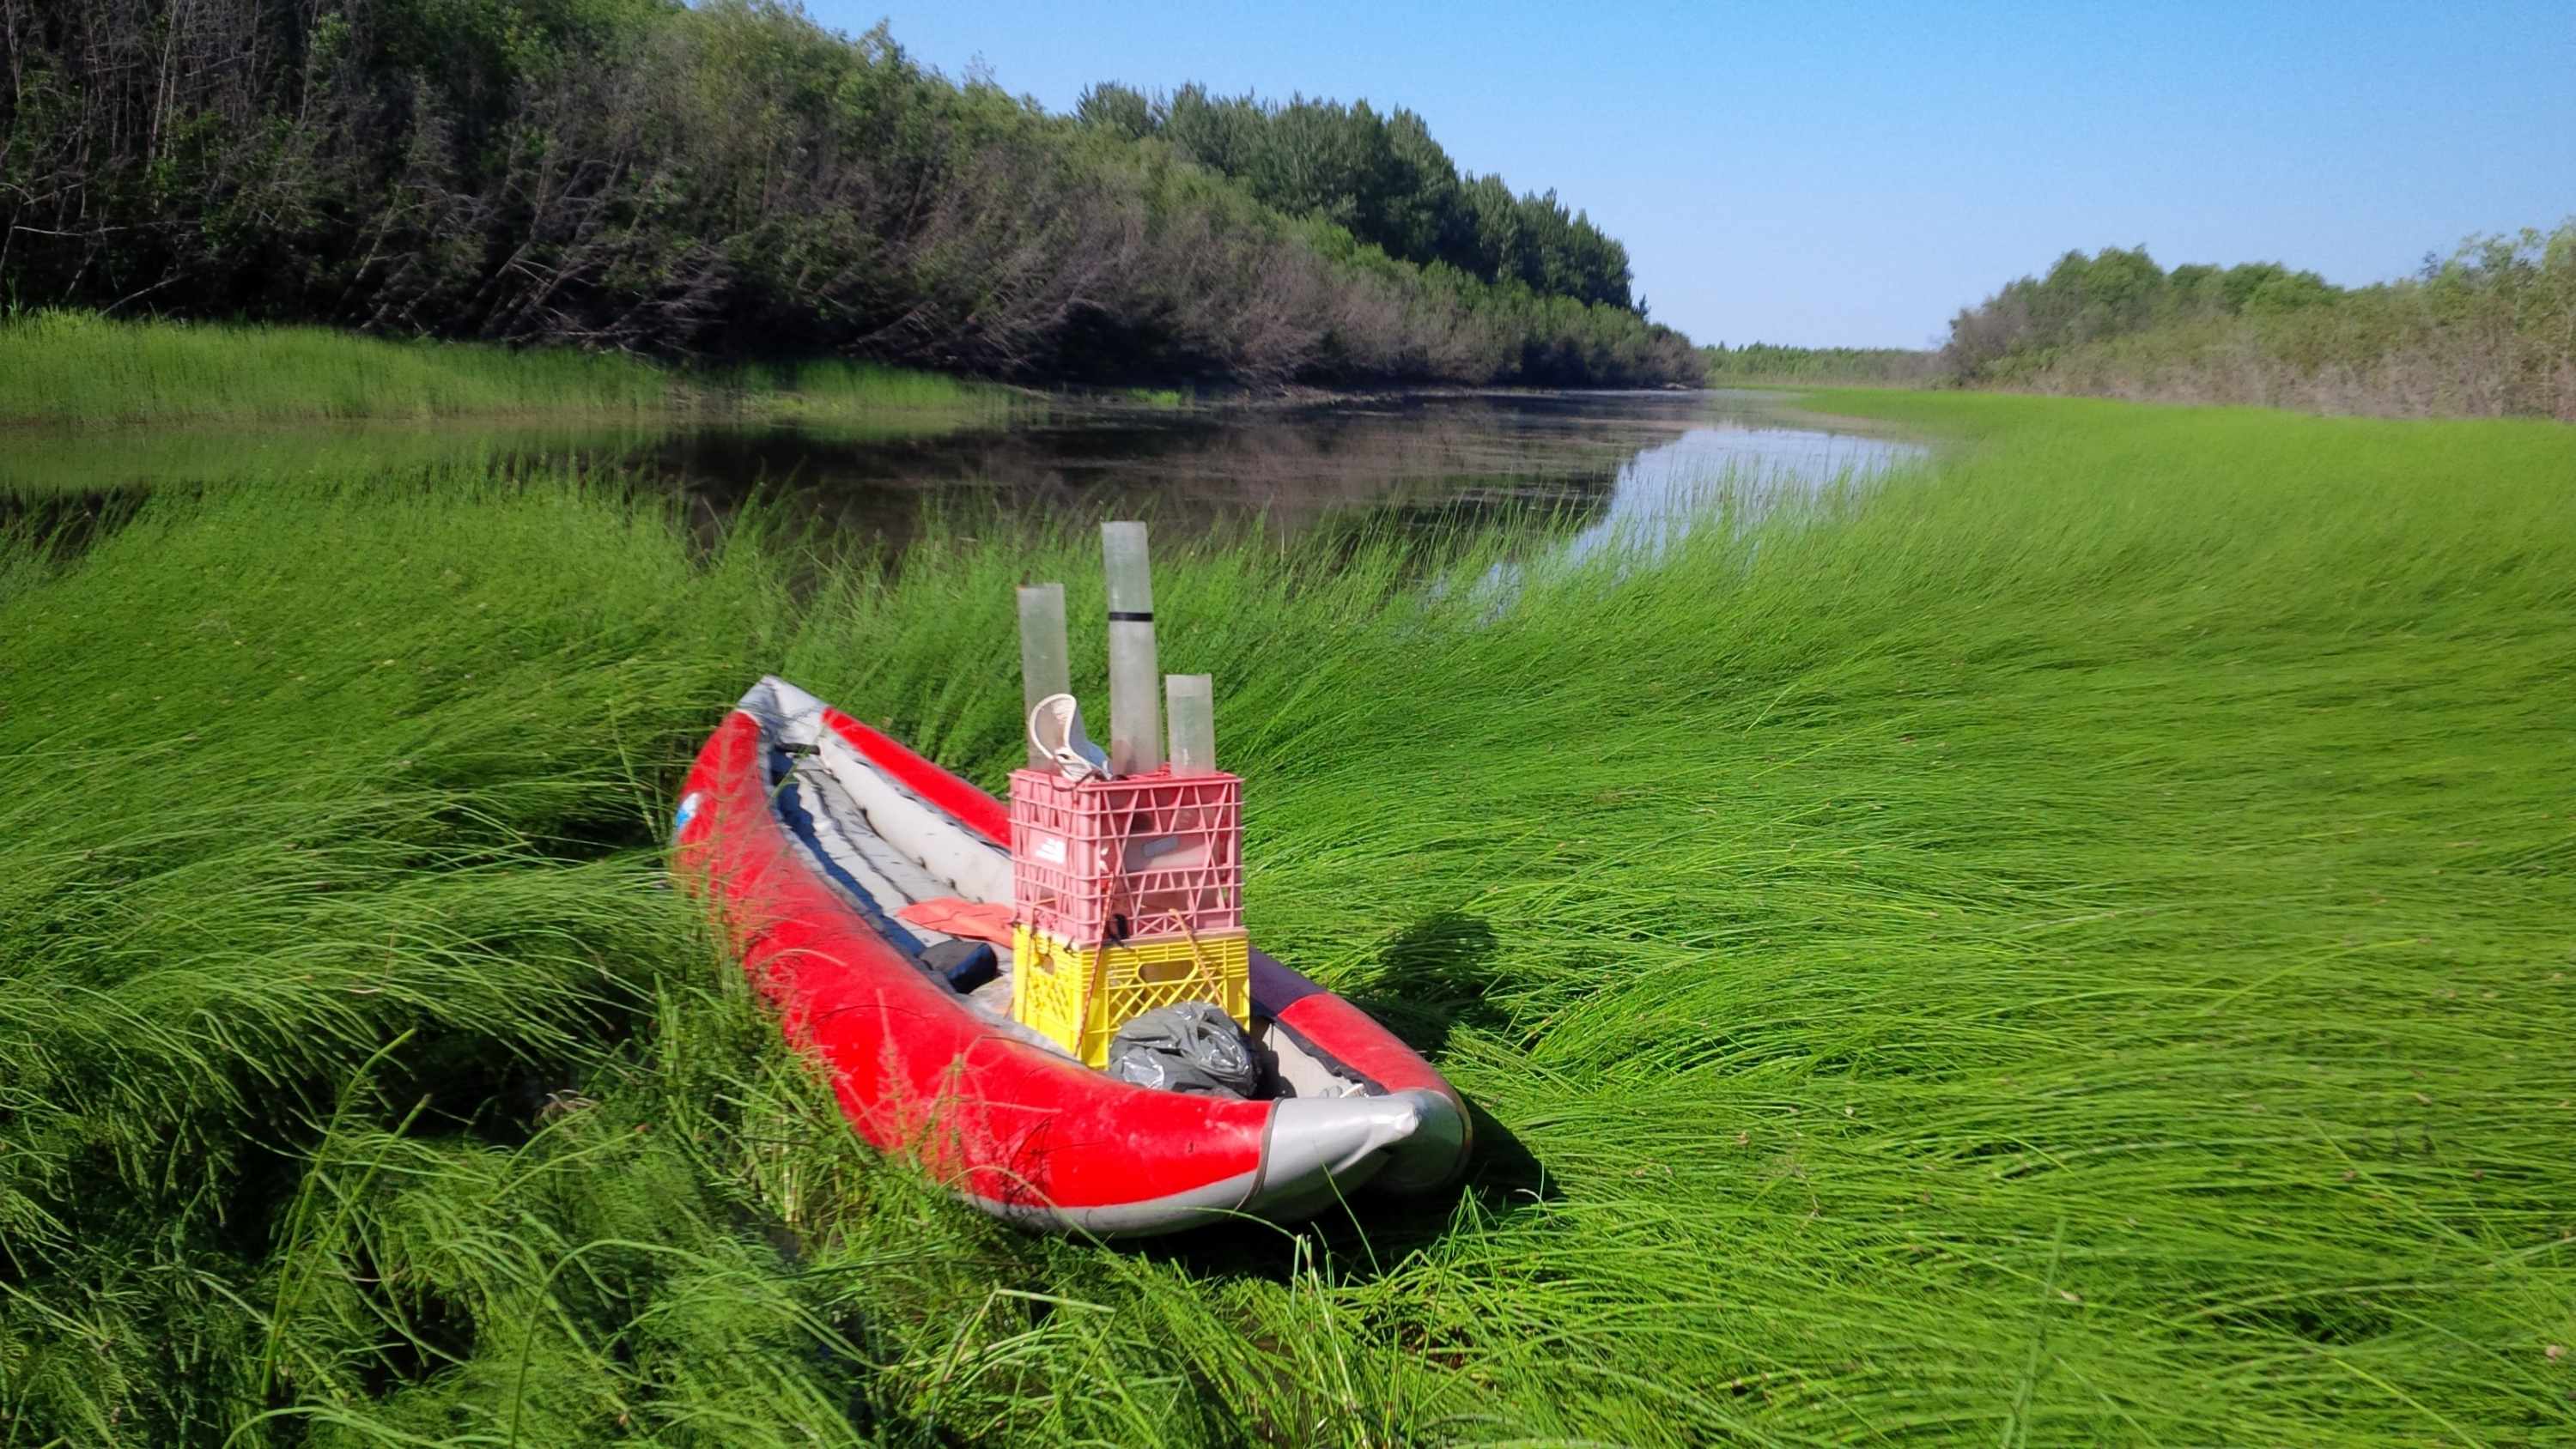 A red boat sits on green grass next to a small lake